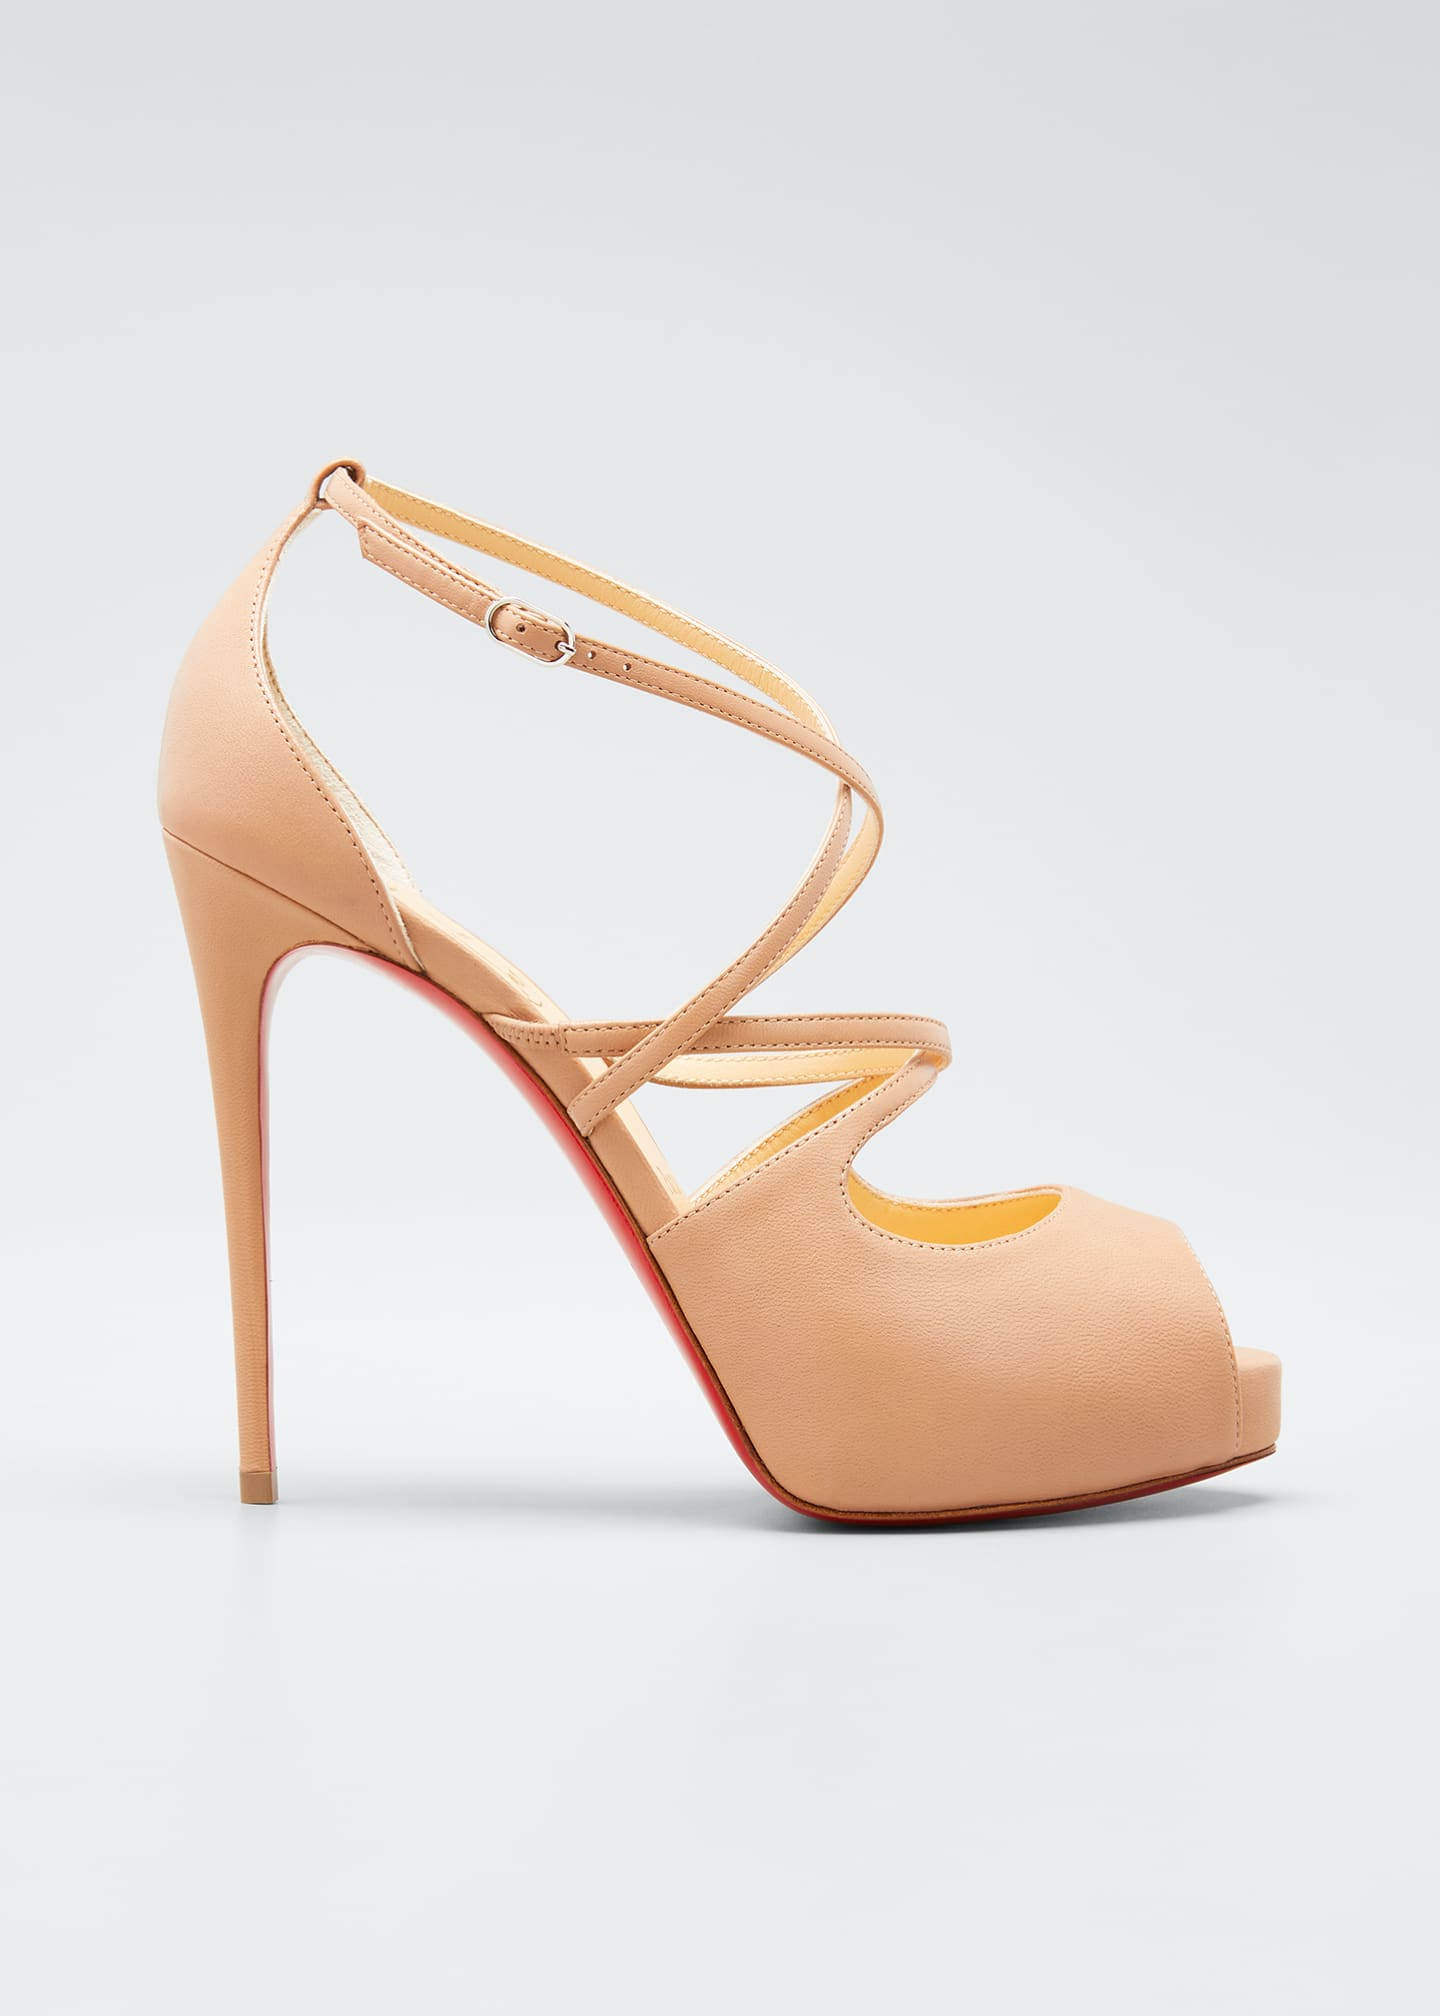 Christian Louboutin Holly Crisscross Red Sole Sandals